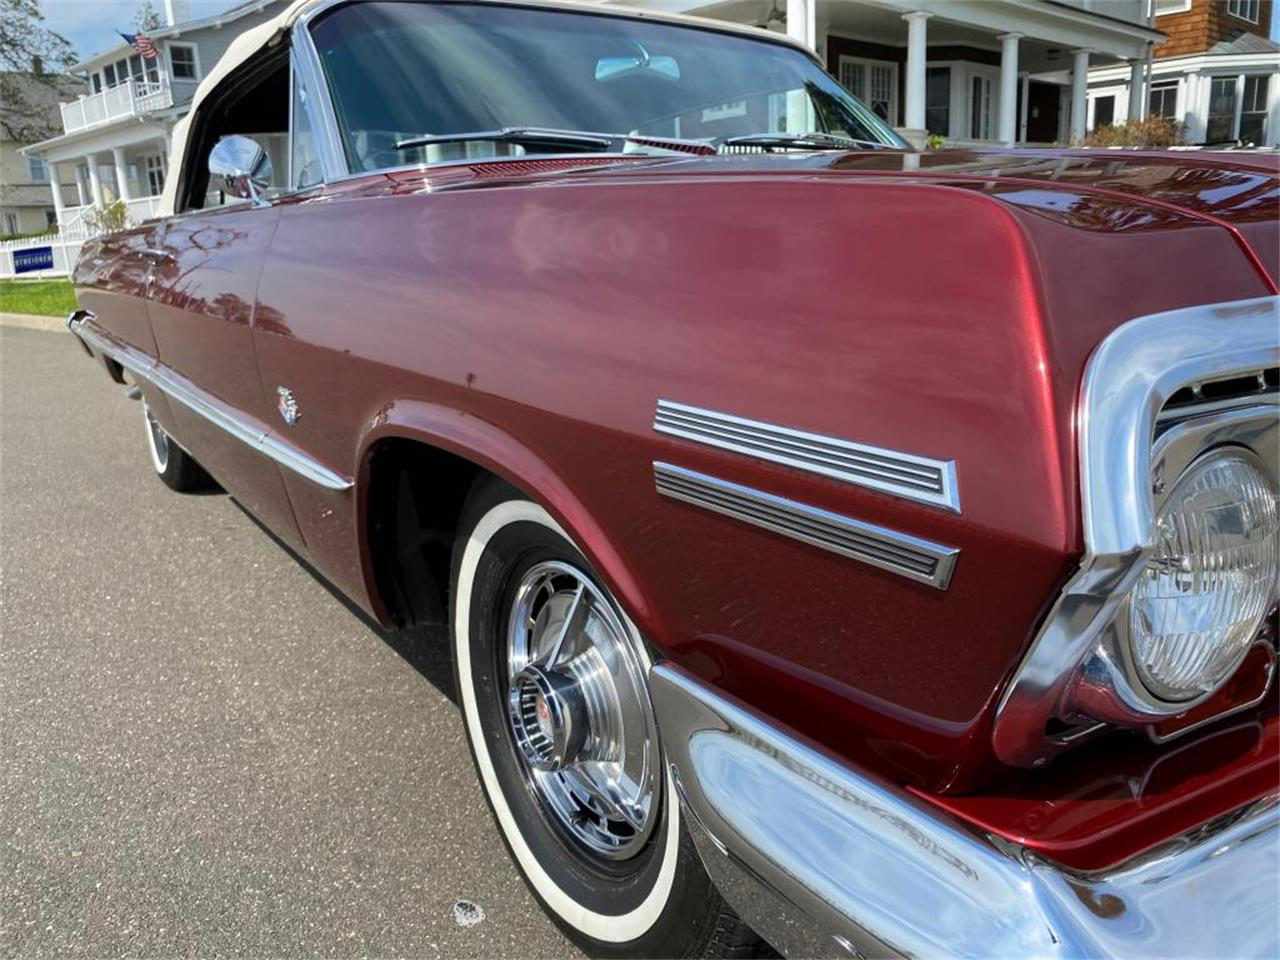 1963 Chevrolet Impala (CC-1384215) for sale in Milford City, Connecticut